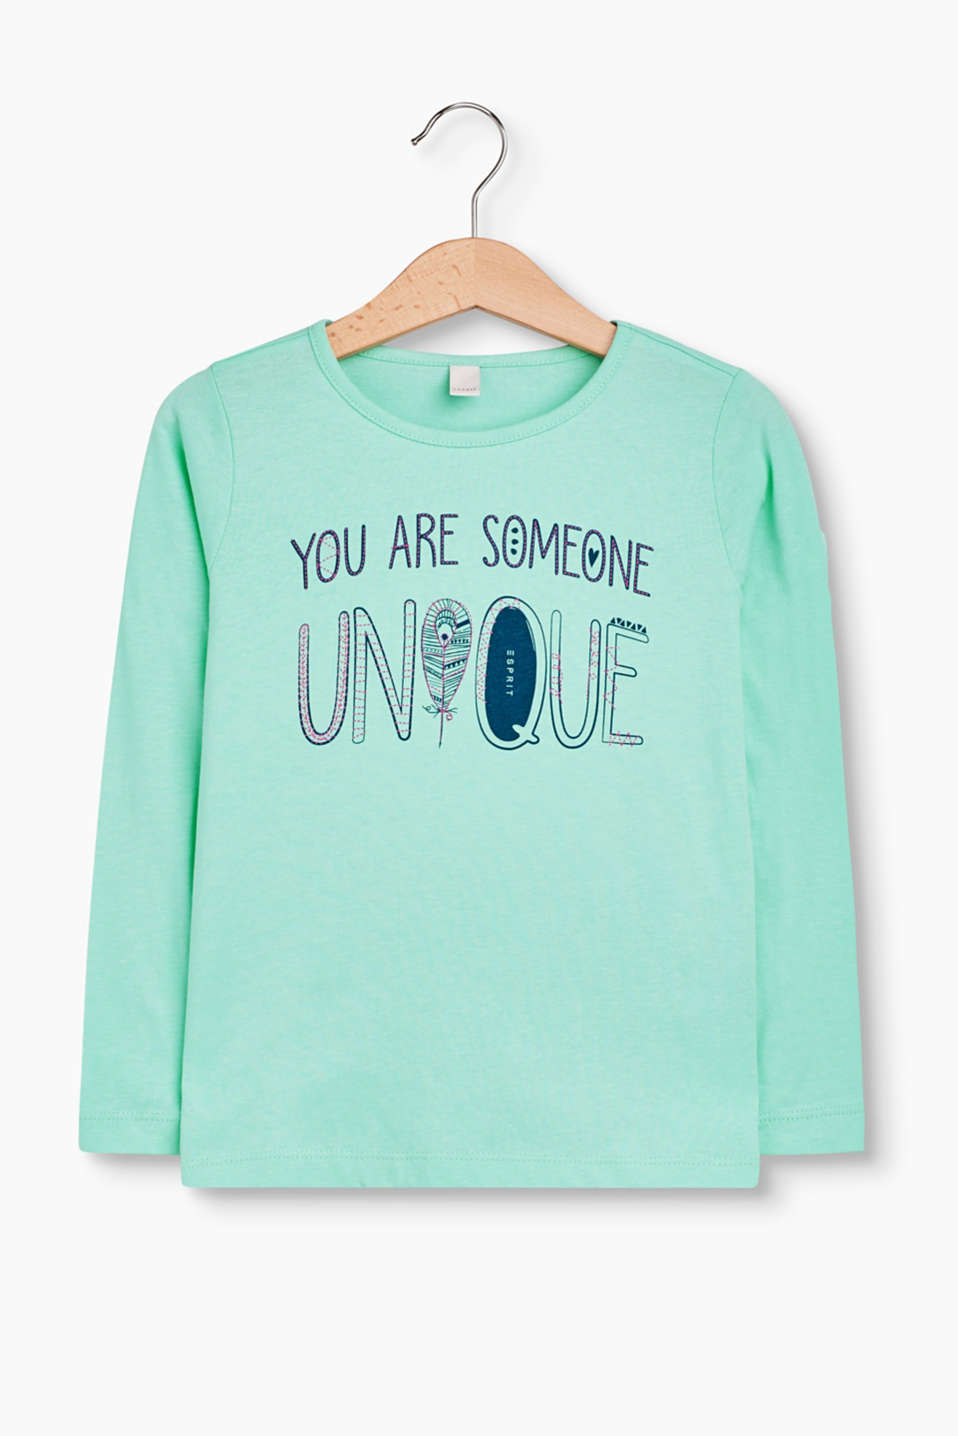 YOU ARE SOMEONE UNIQUE! Rundhals-Longsleeve aus Baumwolle mit trendy Wording-Print.